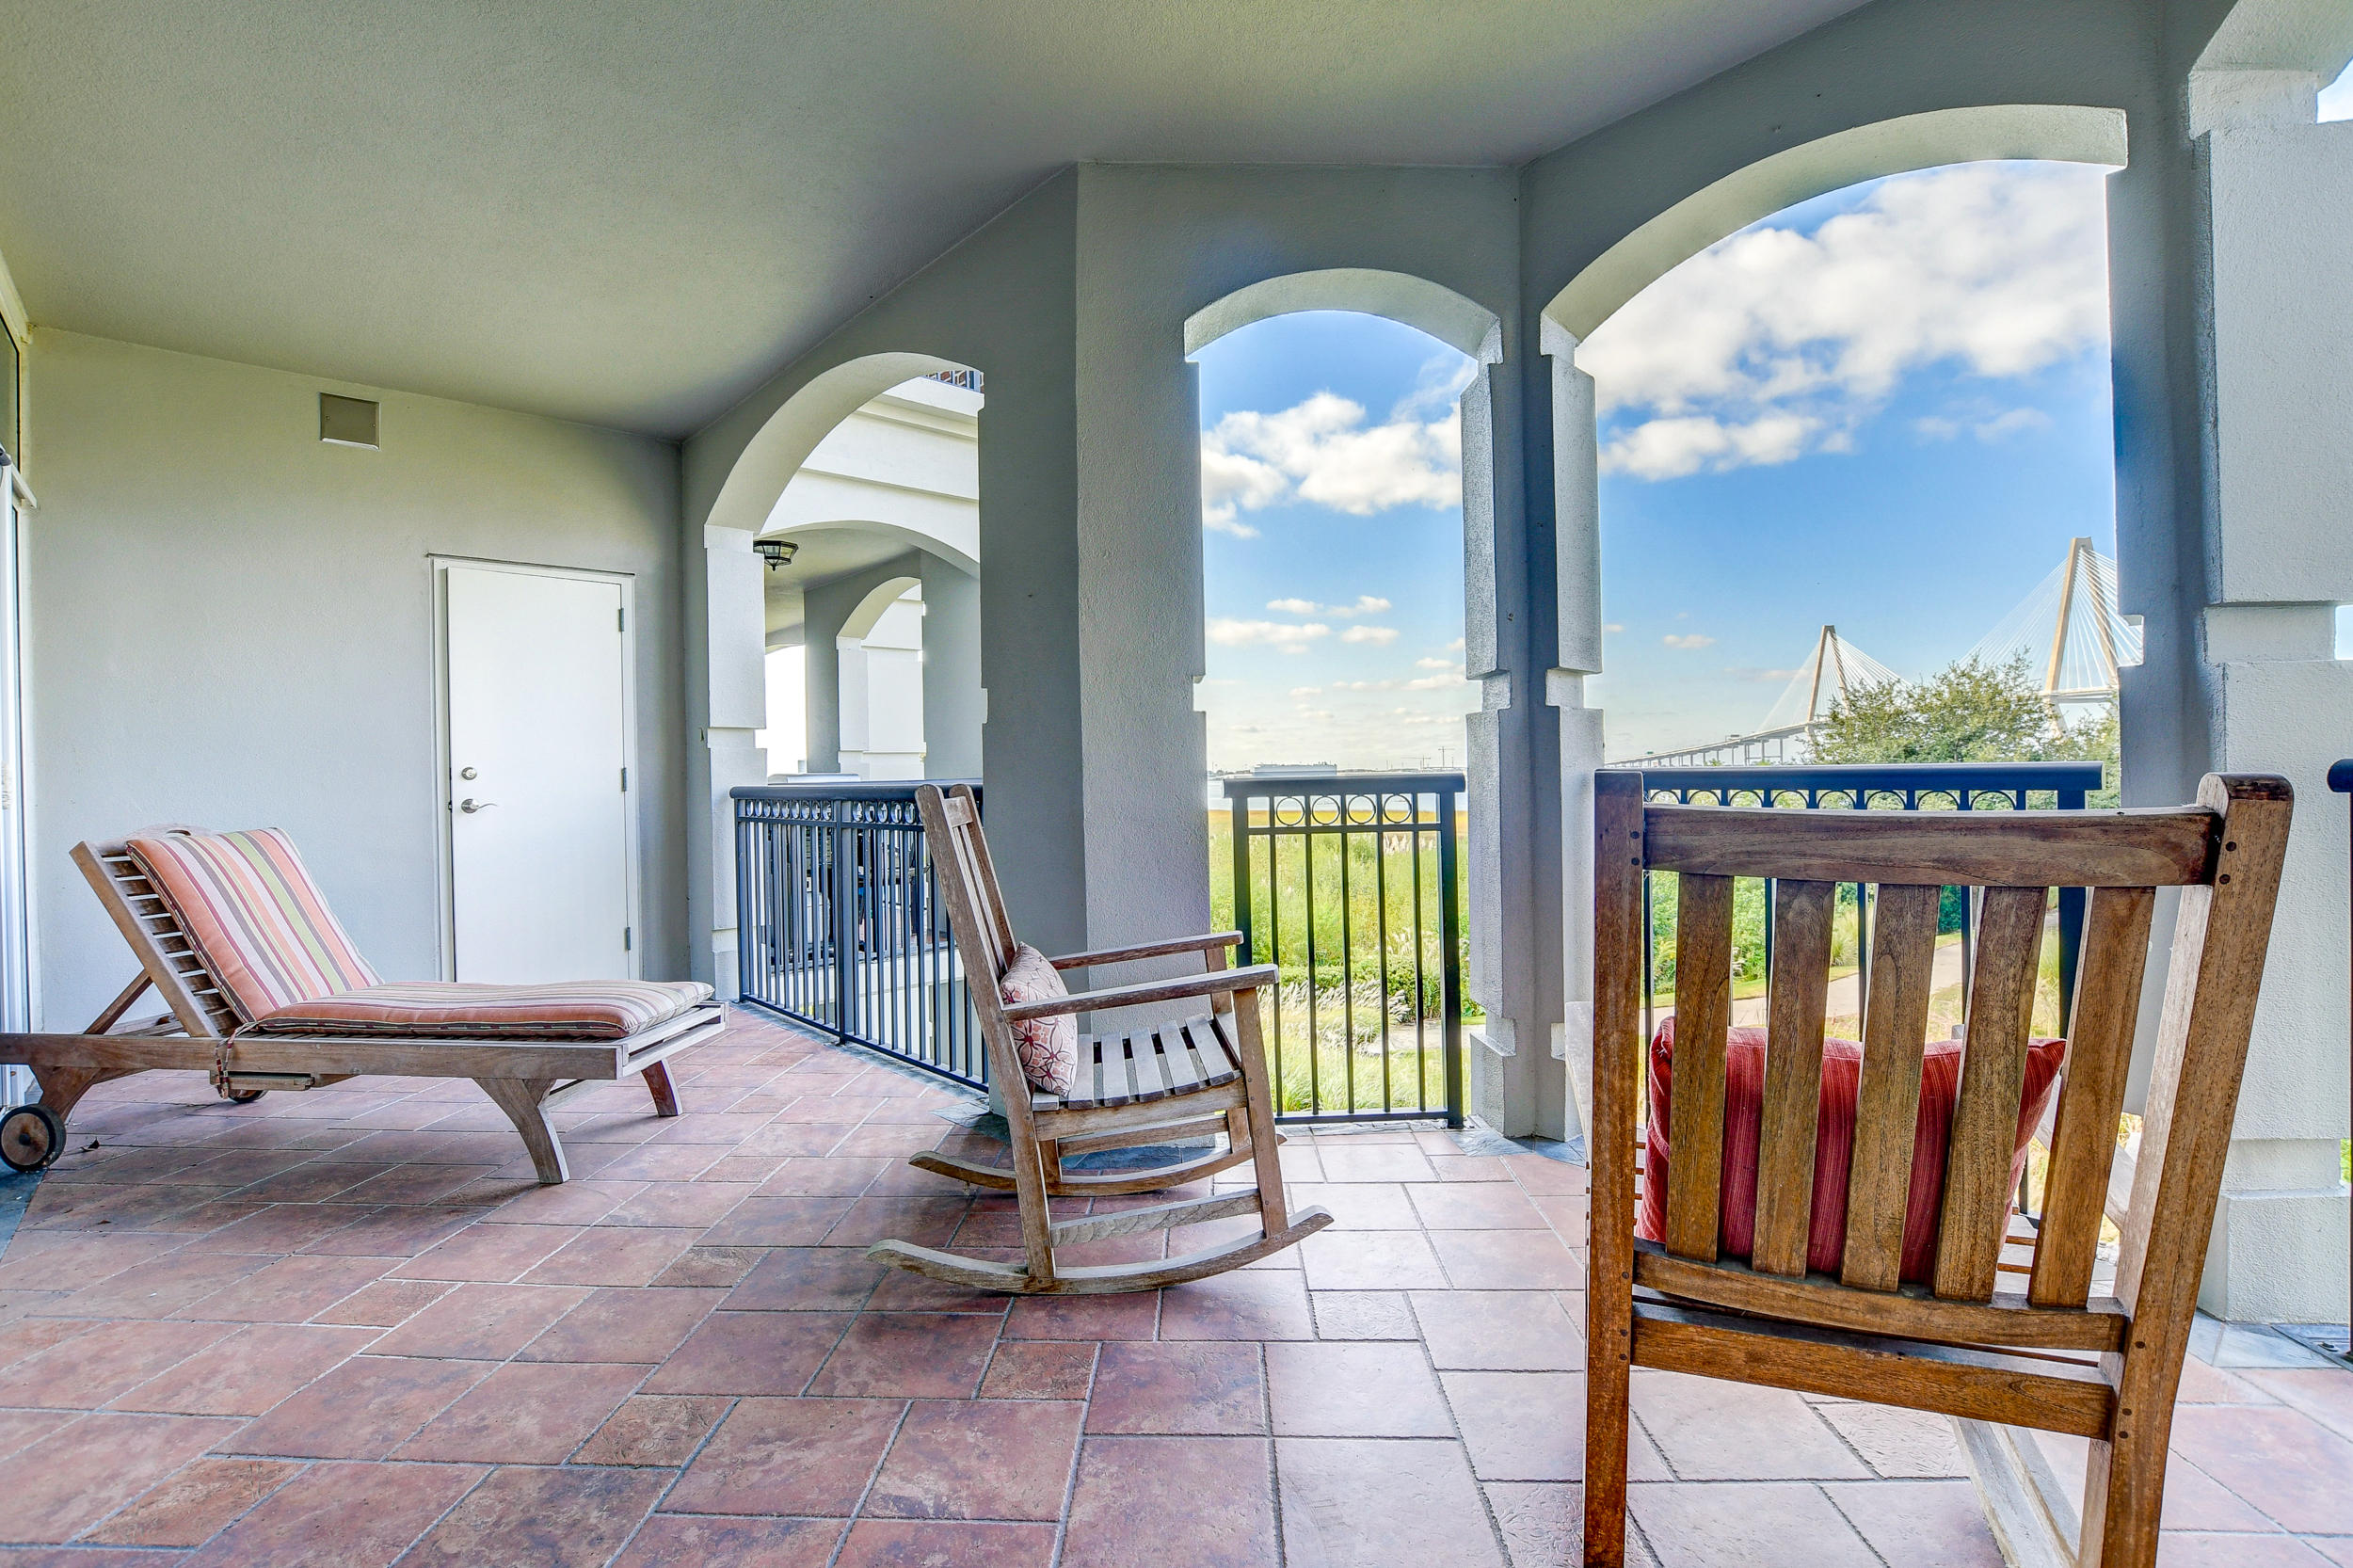 Renaissance On Chas Harbor Homes For Sale - 224 Plaza, Mount Pleasant, SC - 2